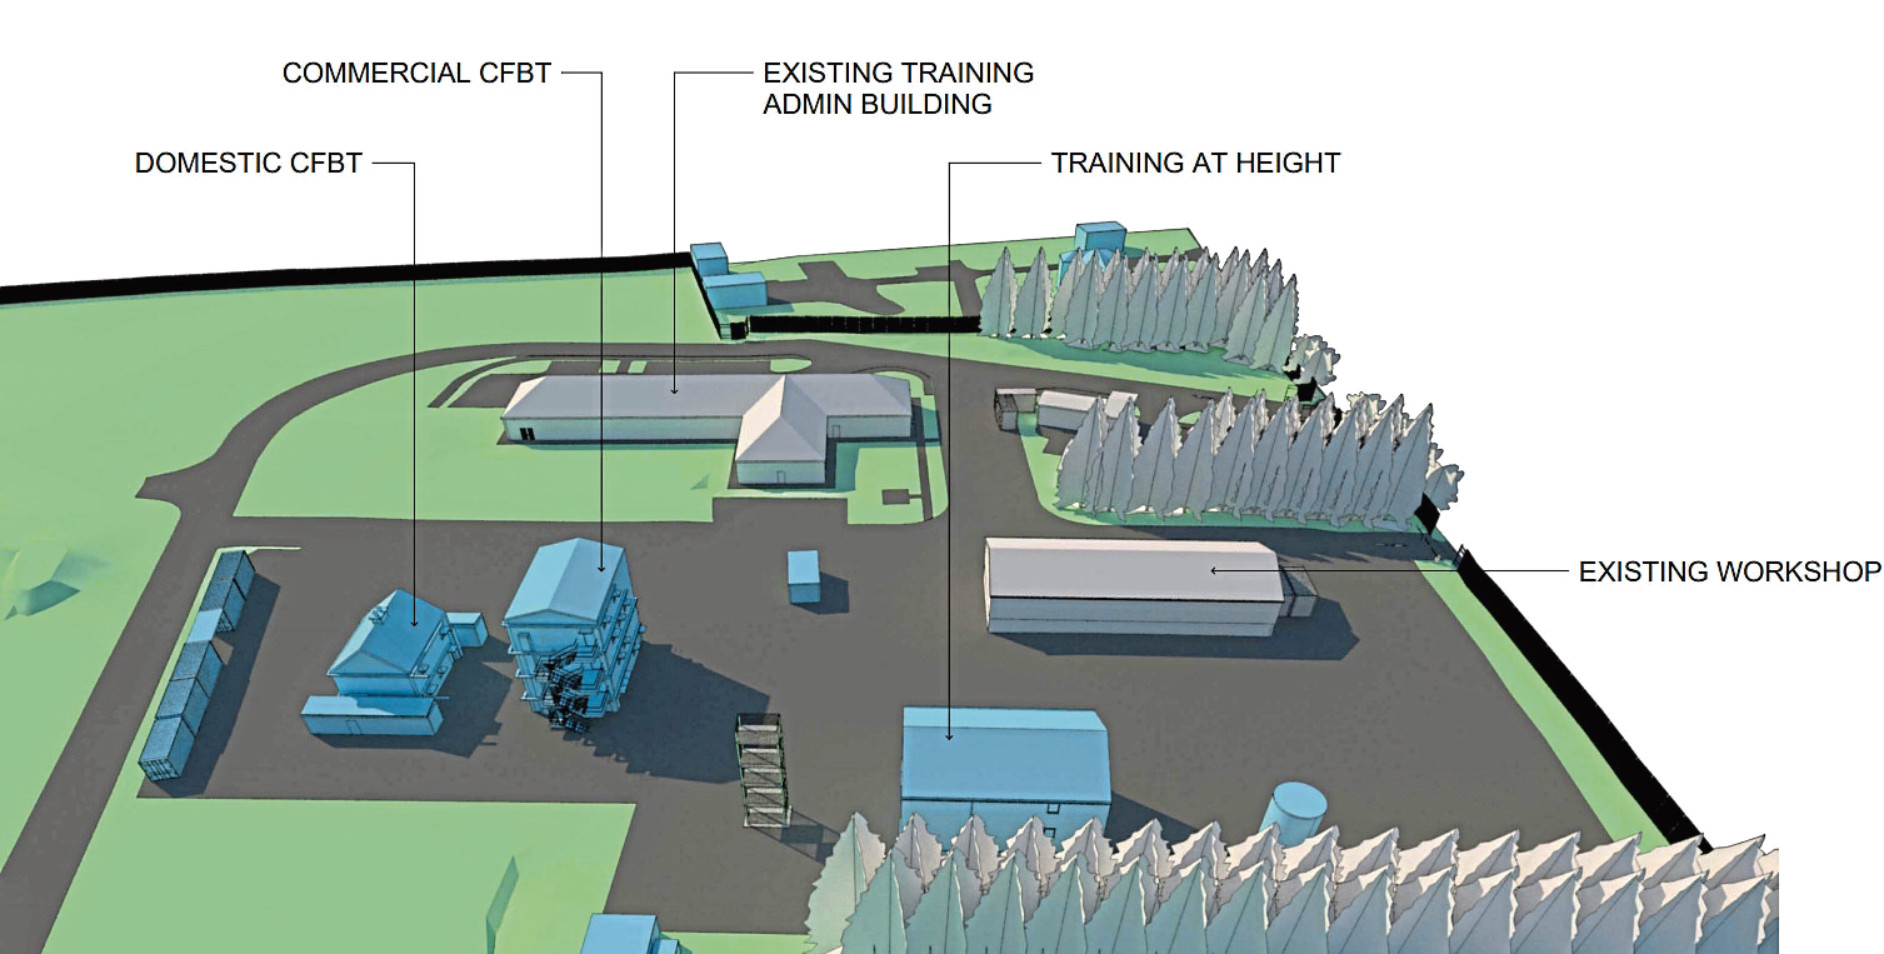 The multi-million-pound plans for the new fire training centre include areas to provide advanced instruction in specialist areas